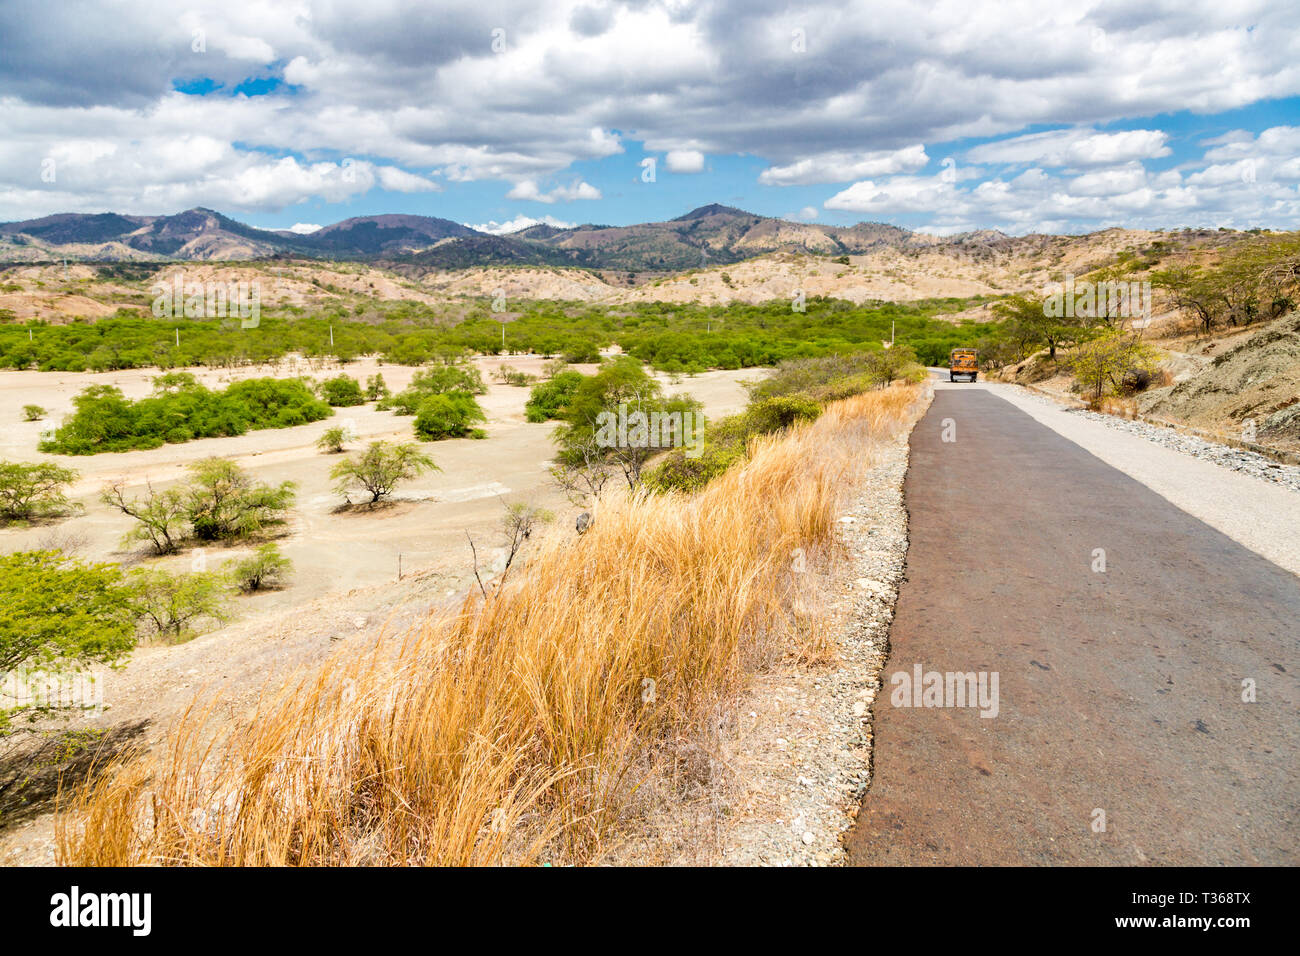 Asphalt road from Dili to Baucau with an orange truck in a distance. Dry savanna. Rural landscape, nature of East Timor or Timor-Leste, near Baucau, V Stock Photo